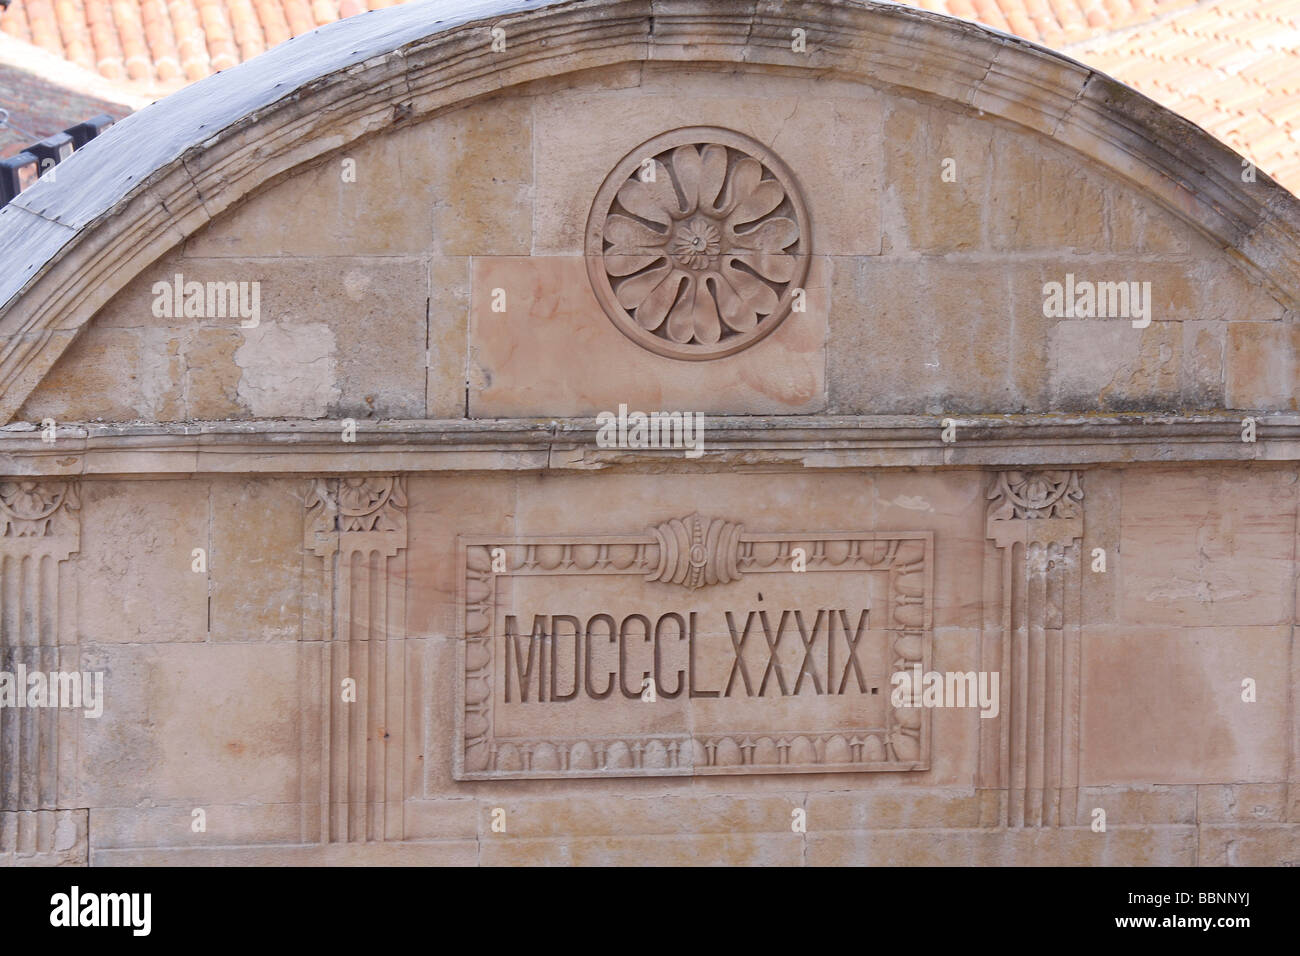 Roman numerals on a building wall dating its construction 1889 - Stock Image